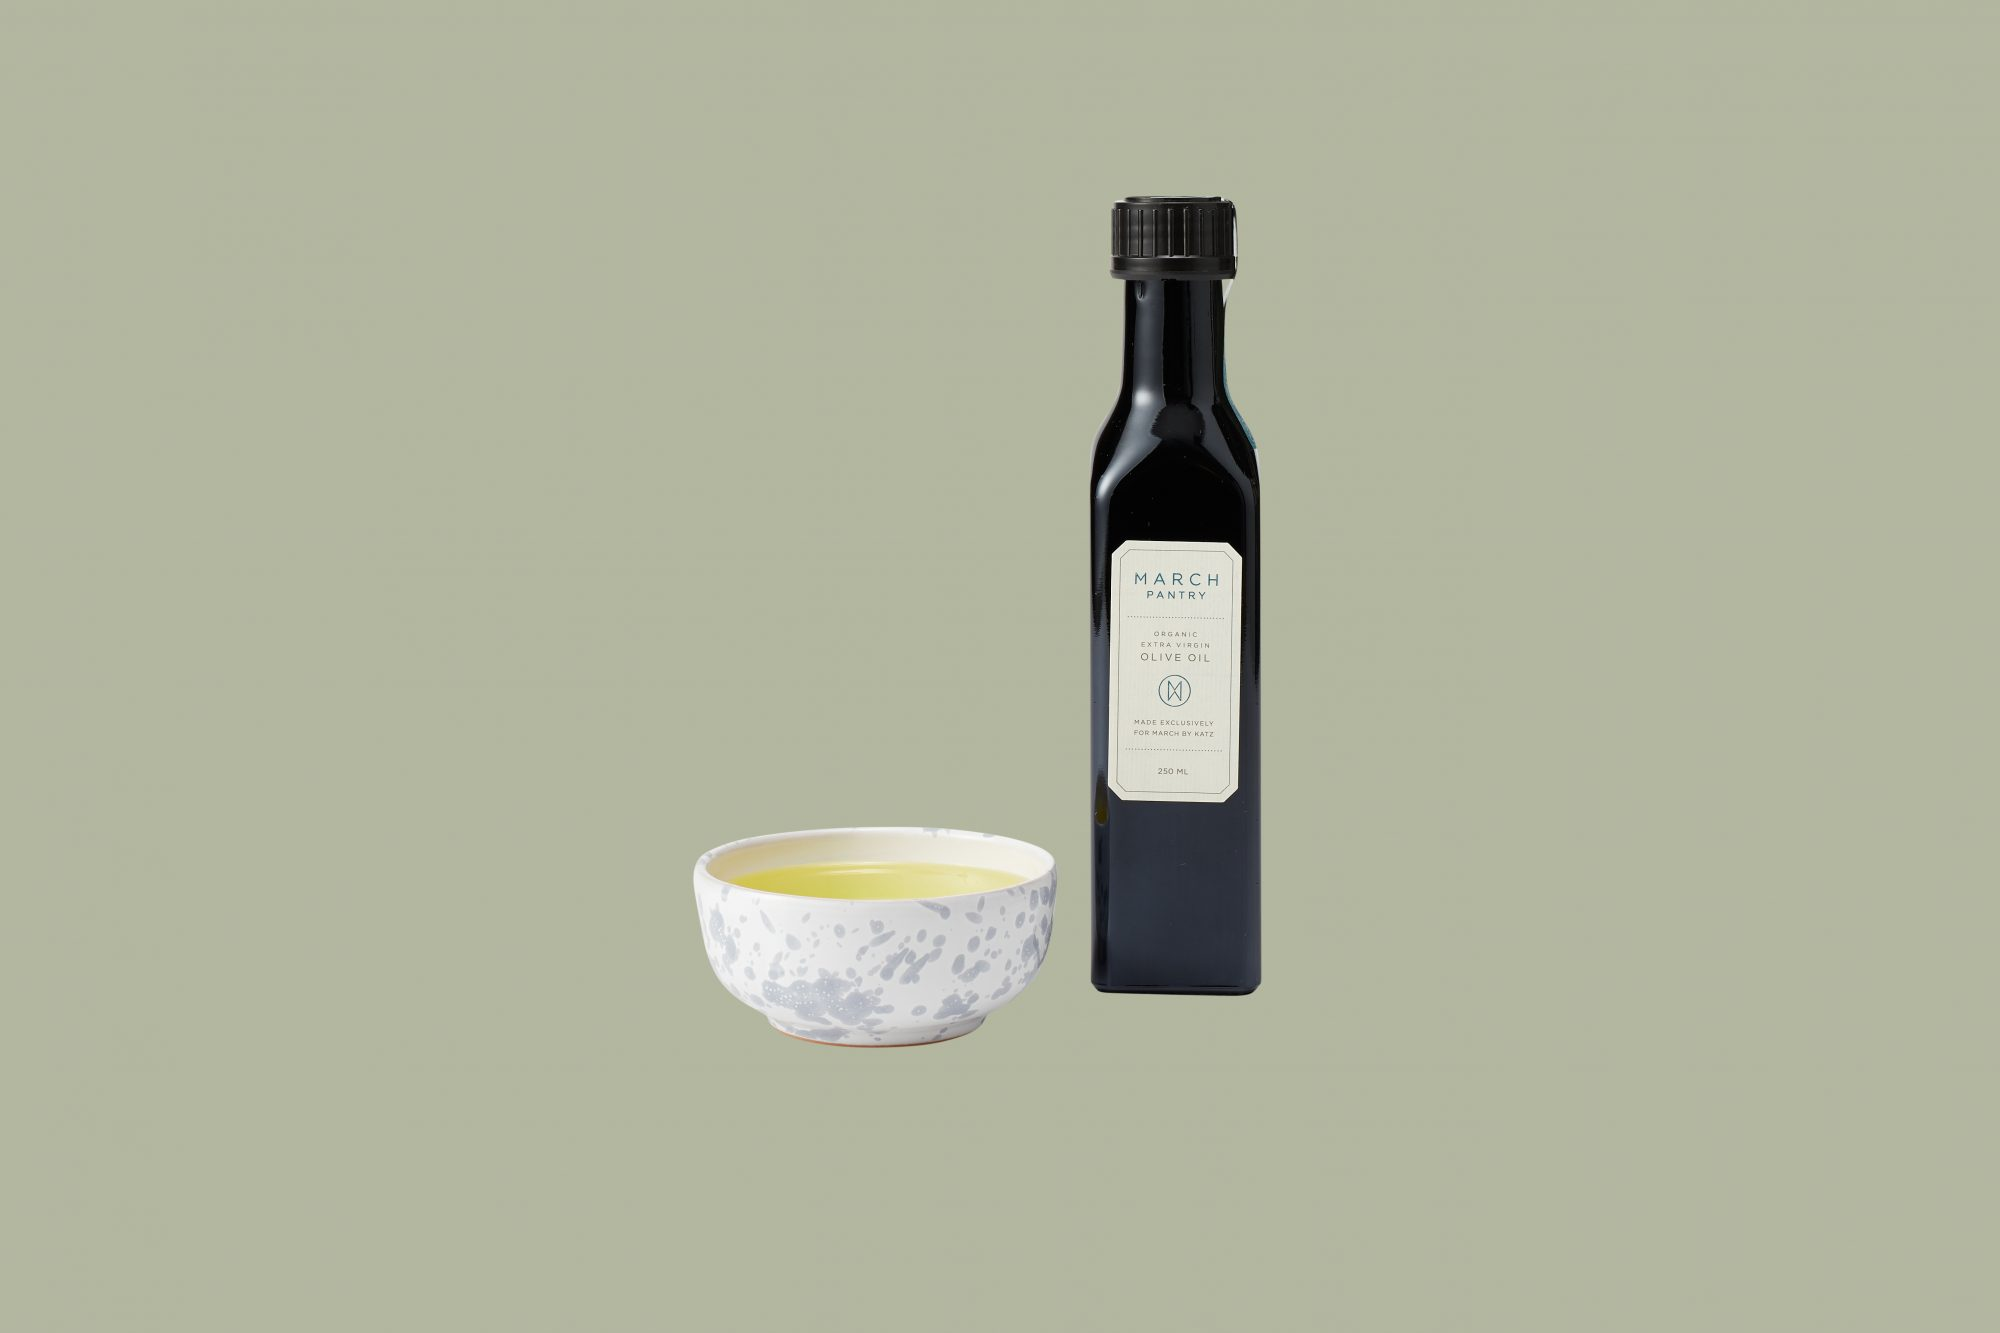 march pantry organic extra virgin olive oil